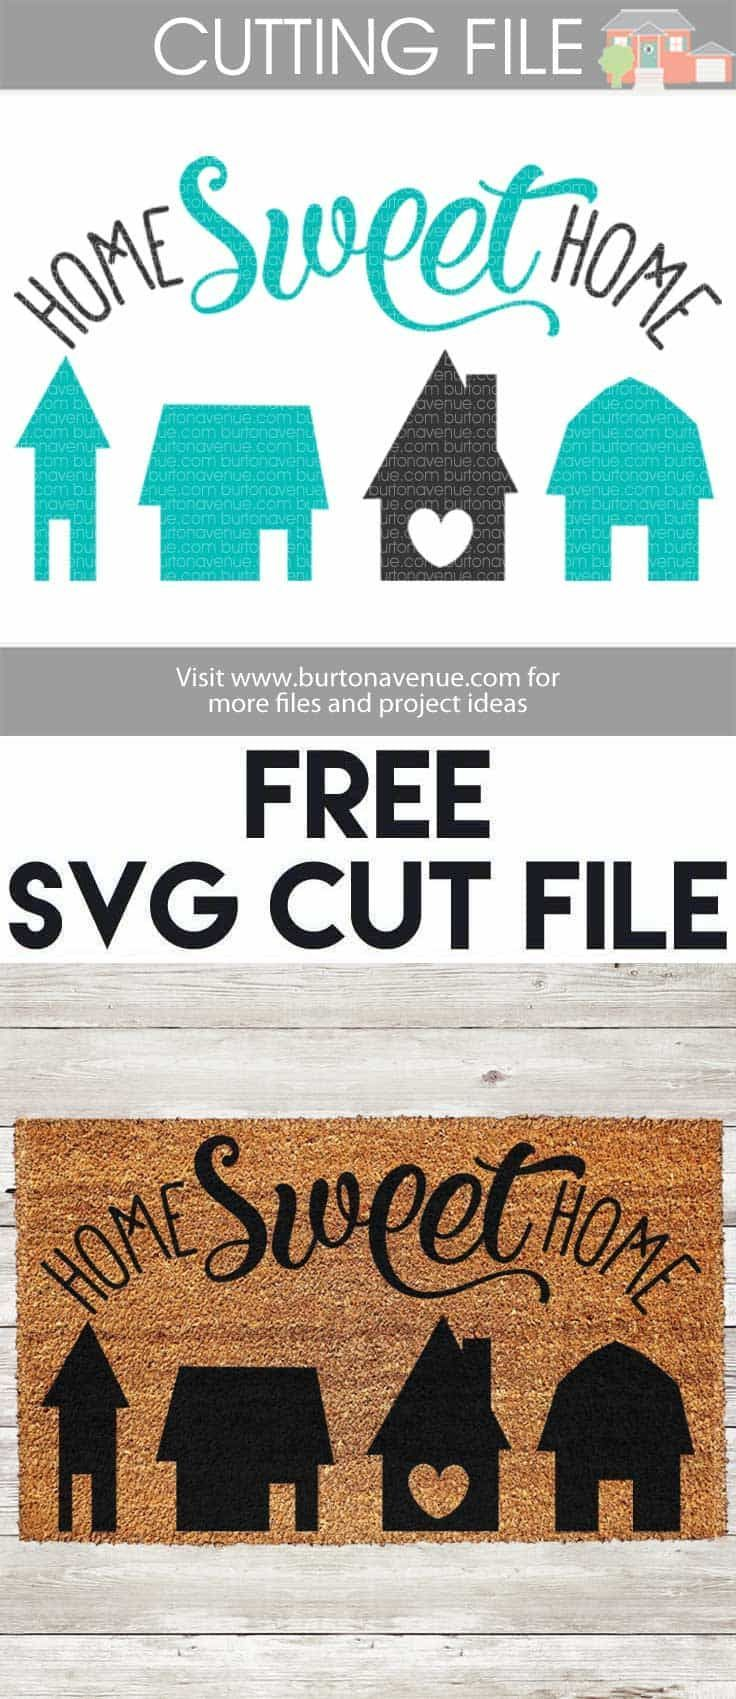 Free SVG Cut Files for Silhouette, Cricut, and more